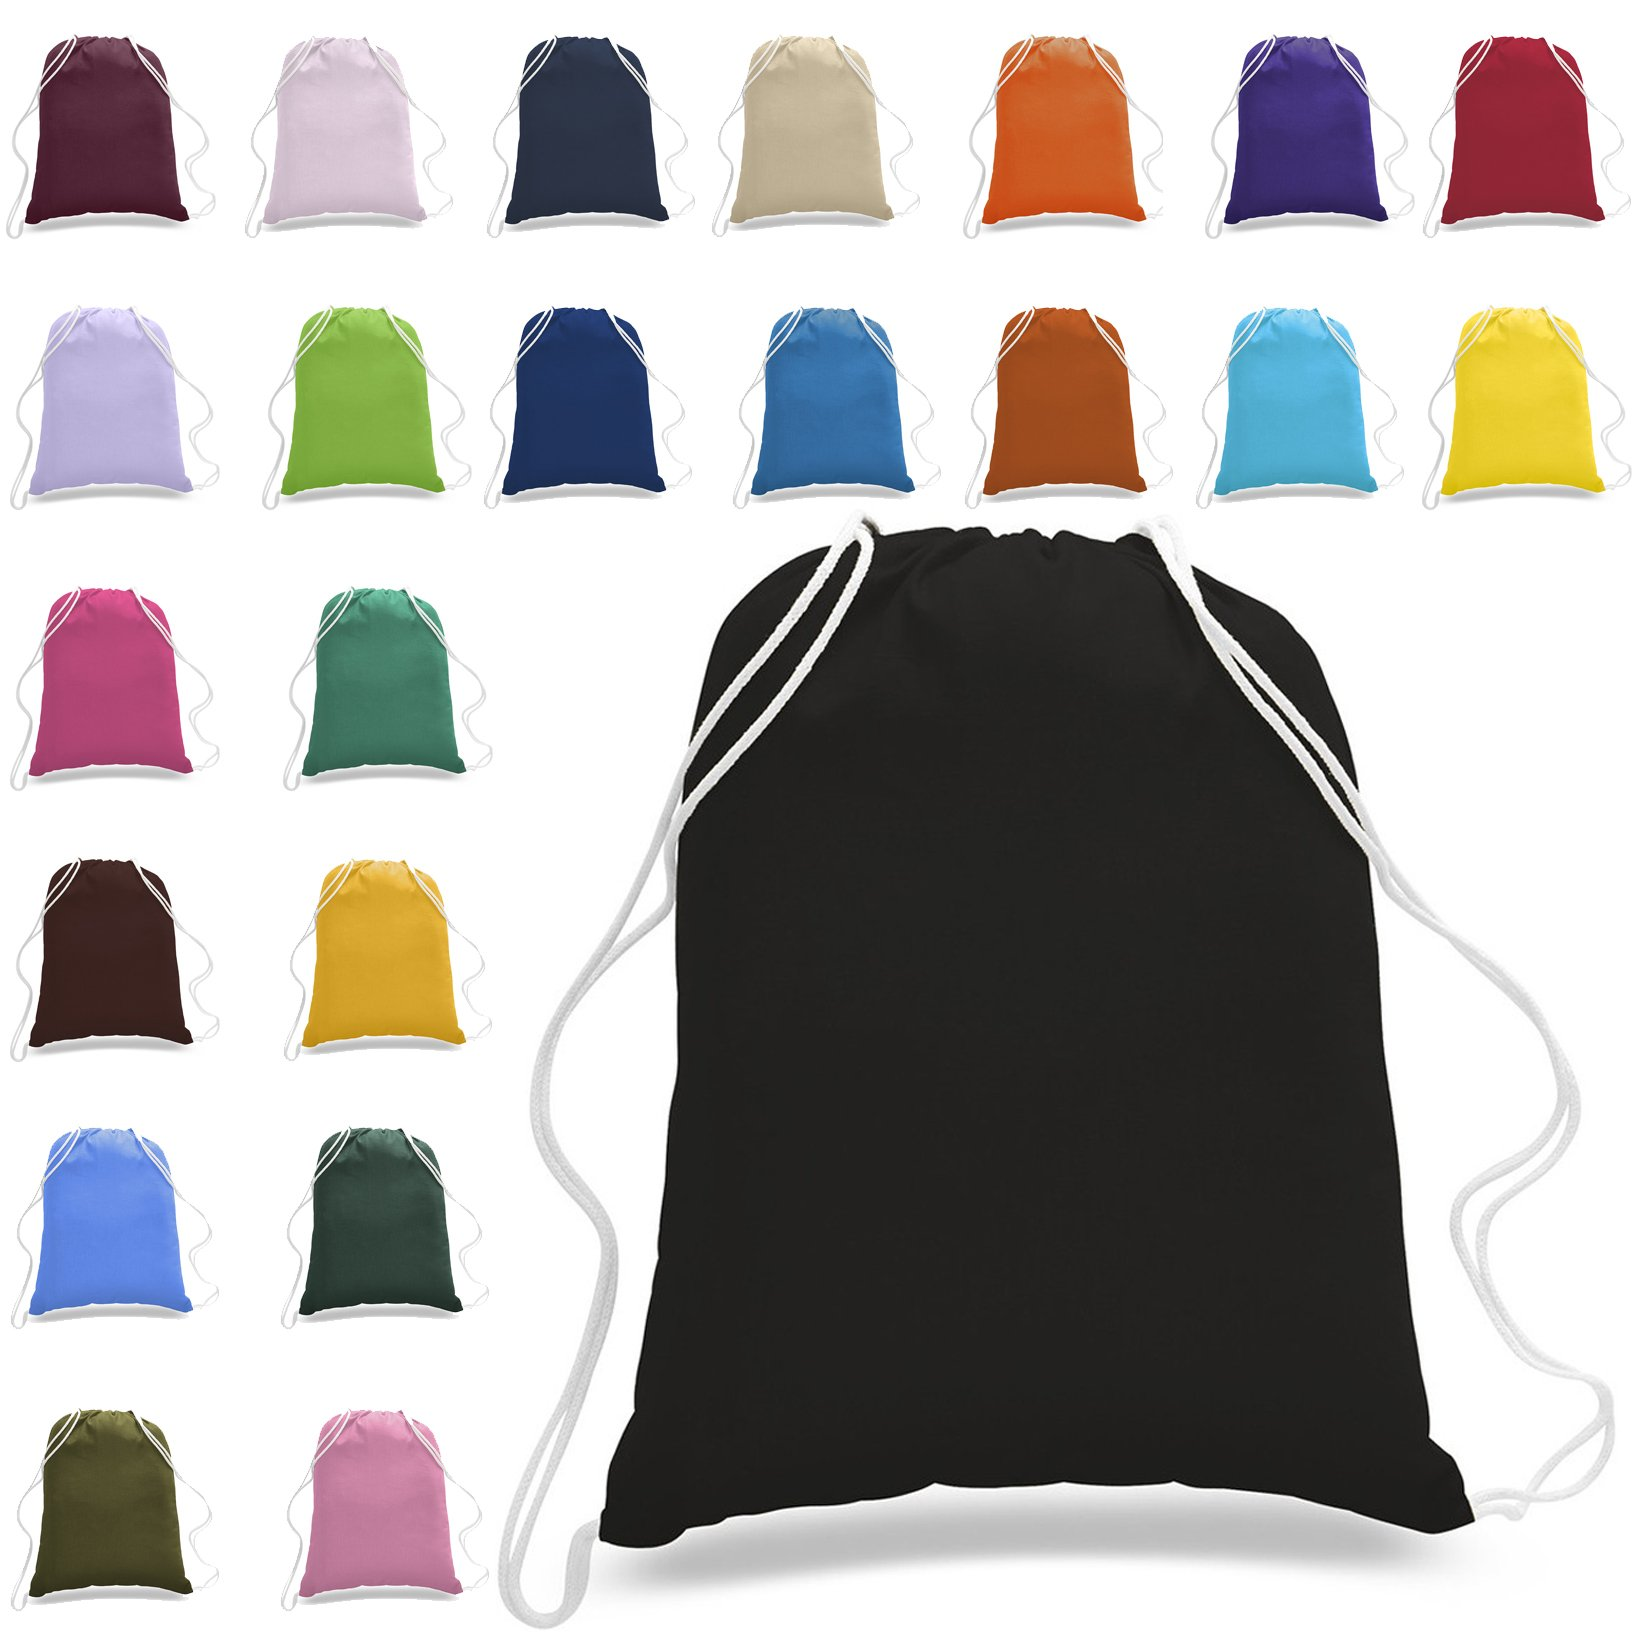 1 Dozen - (12 Pack) - Assorted Colors - 100% Cotton Quality Drawstring Bags - Large Drawstring Backpack Sackpack - Men & Women Sport Gym Sack Drawstring Backpack Bag - Art and Craft Bag (Mix-Assorted)